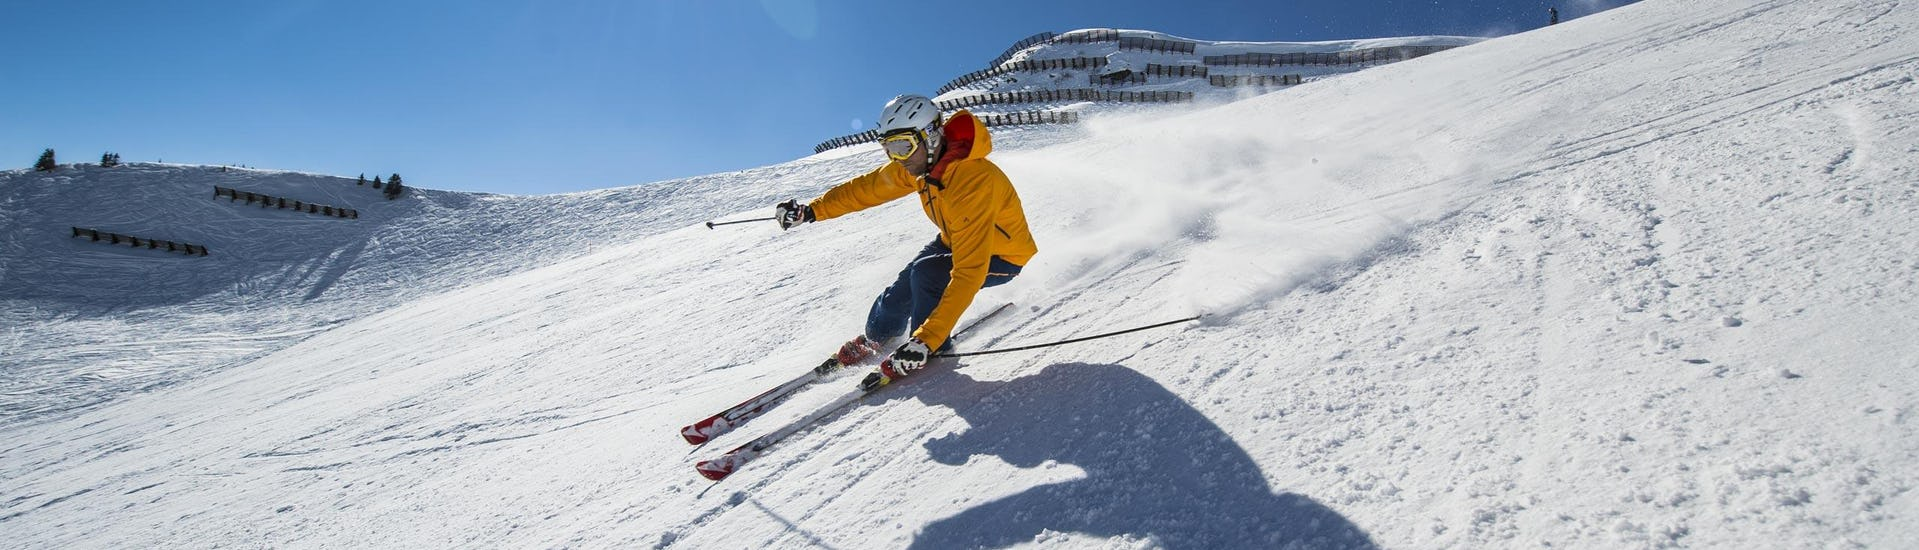 Ski Instructor Private for Adults - All Levels: A skier is skiing down a sunny ski slope while participating in an activity offered by Ride'em Ski School Breuil-Cervinia.